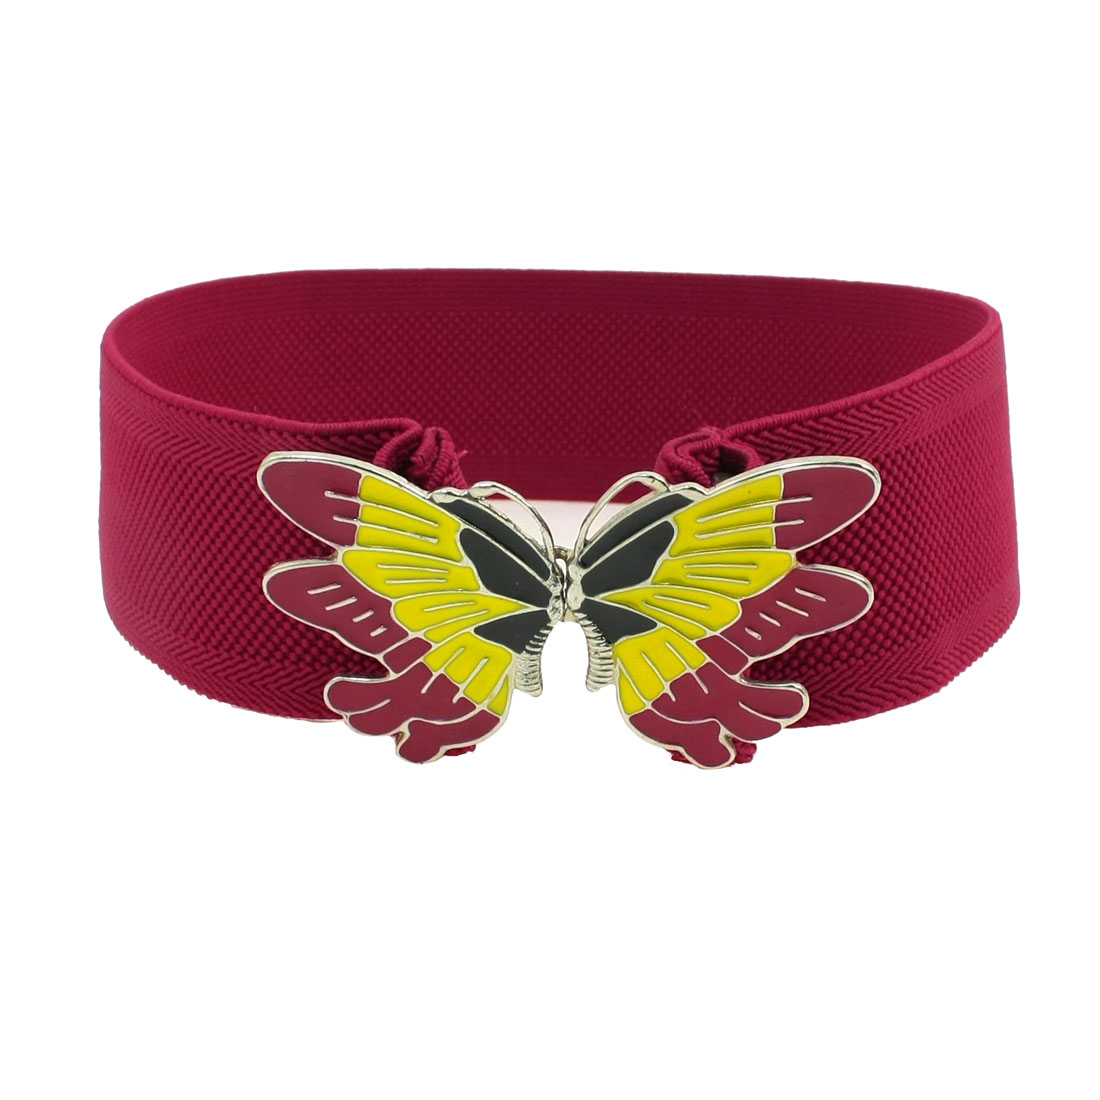 Woman Butterfly Design Metal Buckle Stretchy Waist Belt Cinch Red